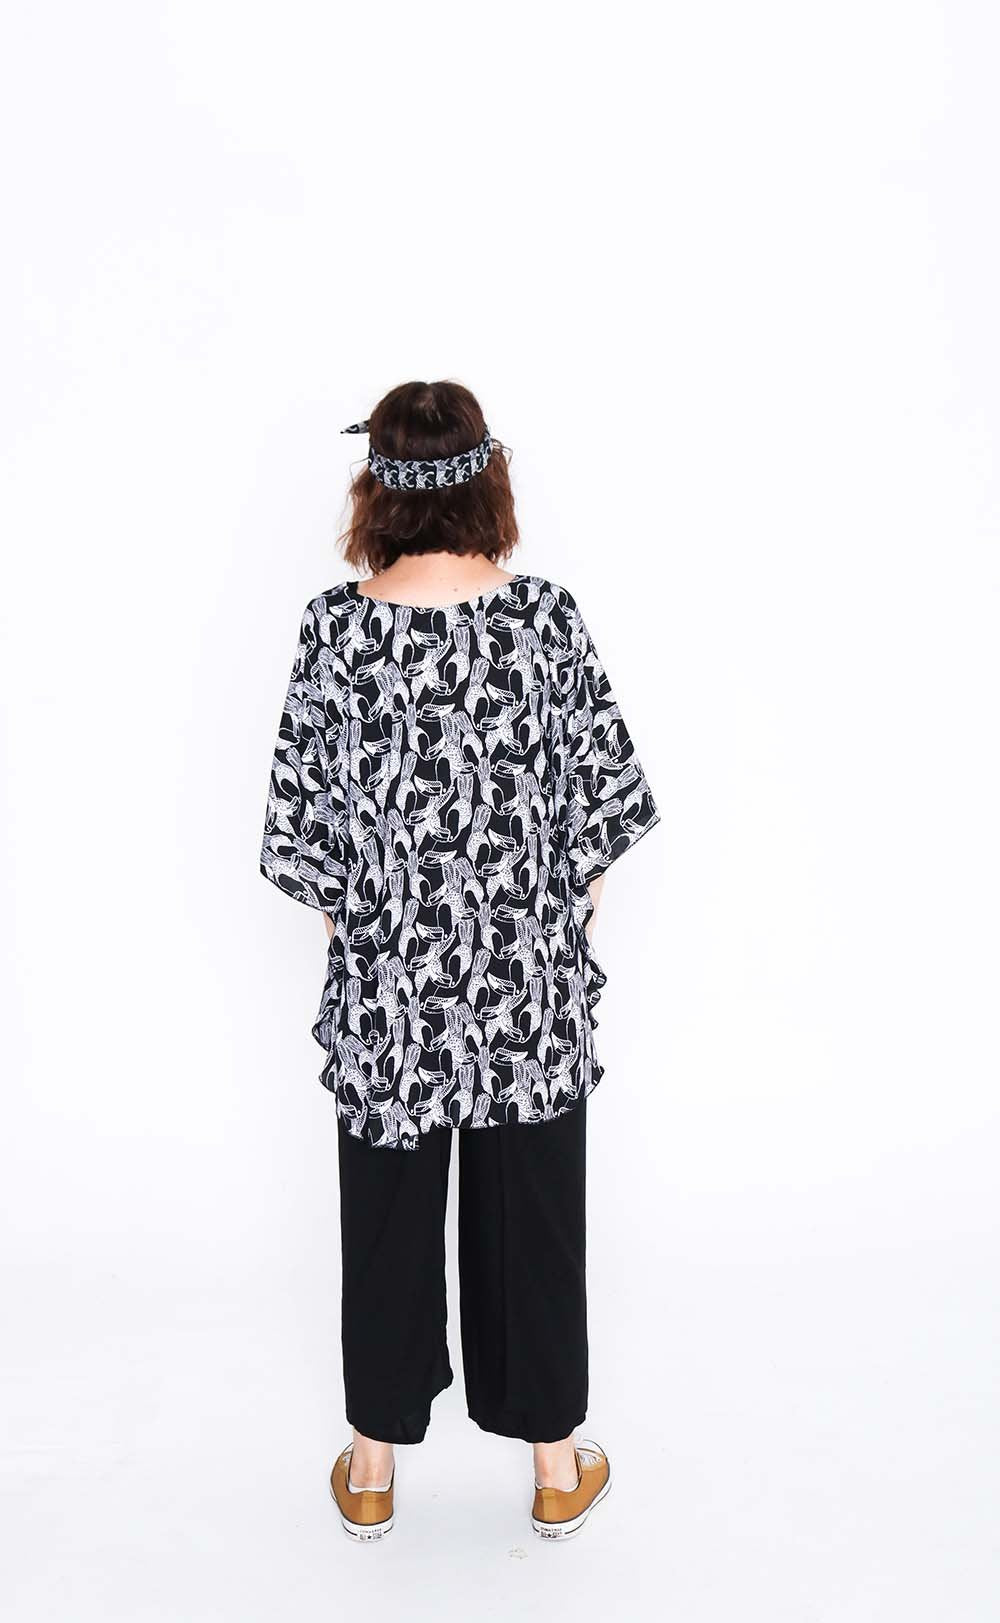 black and white toucan butterfly top back